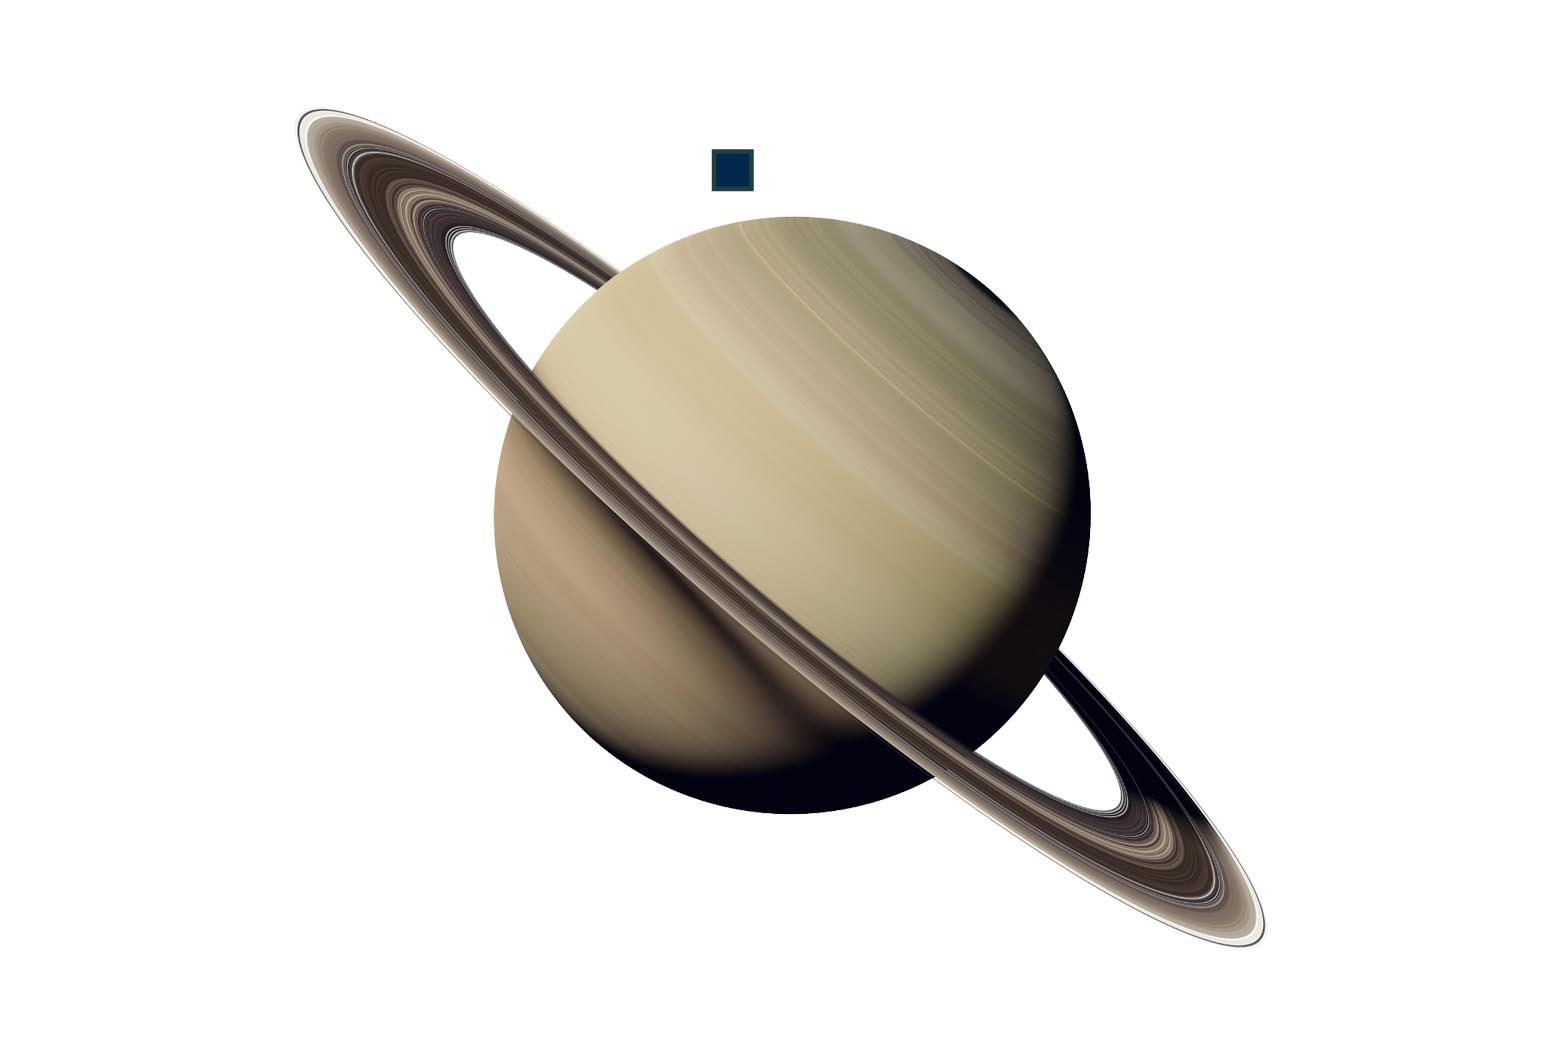 A Saturn graphic with one spacecraft lander orbiting. Graphic by Steve Alvey.